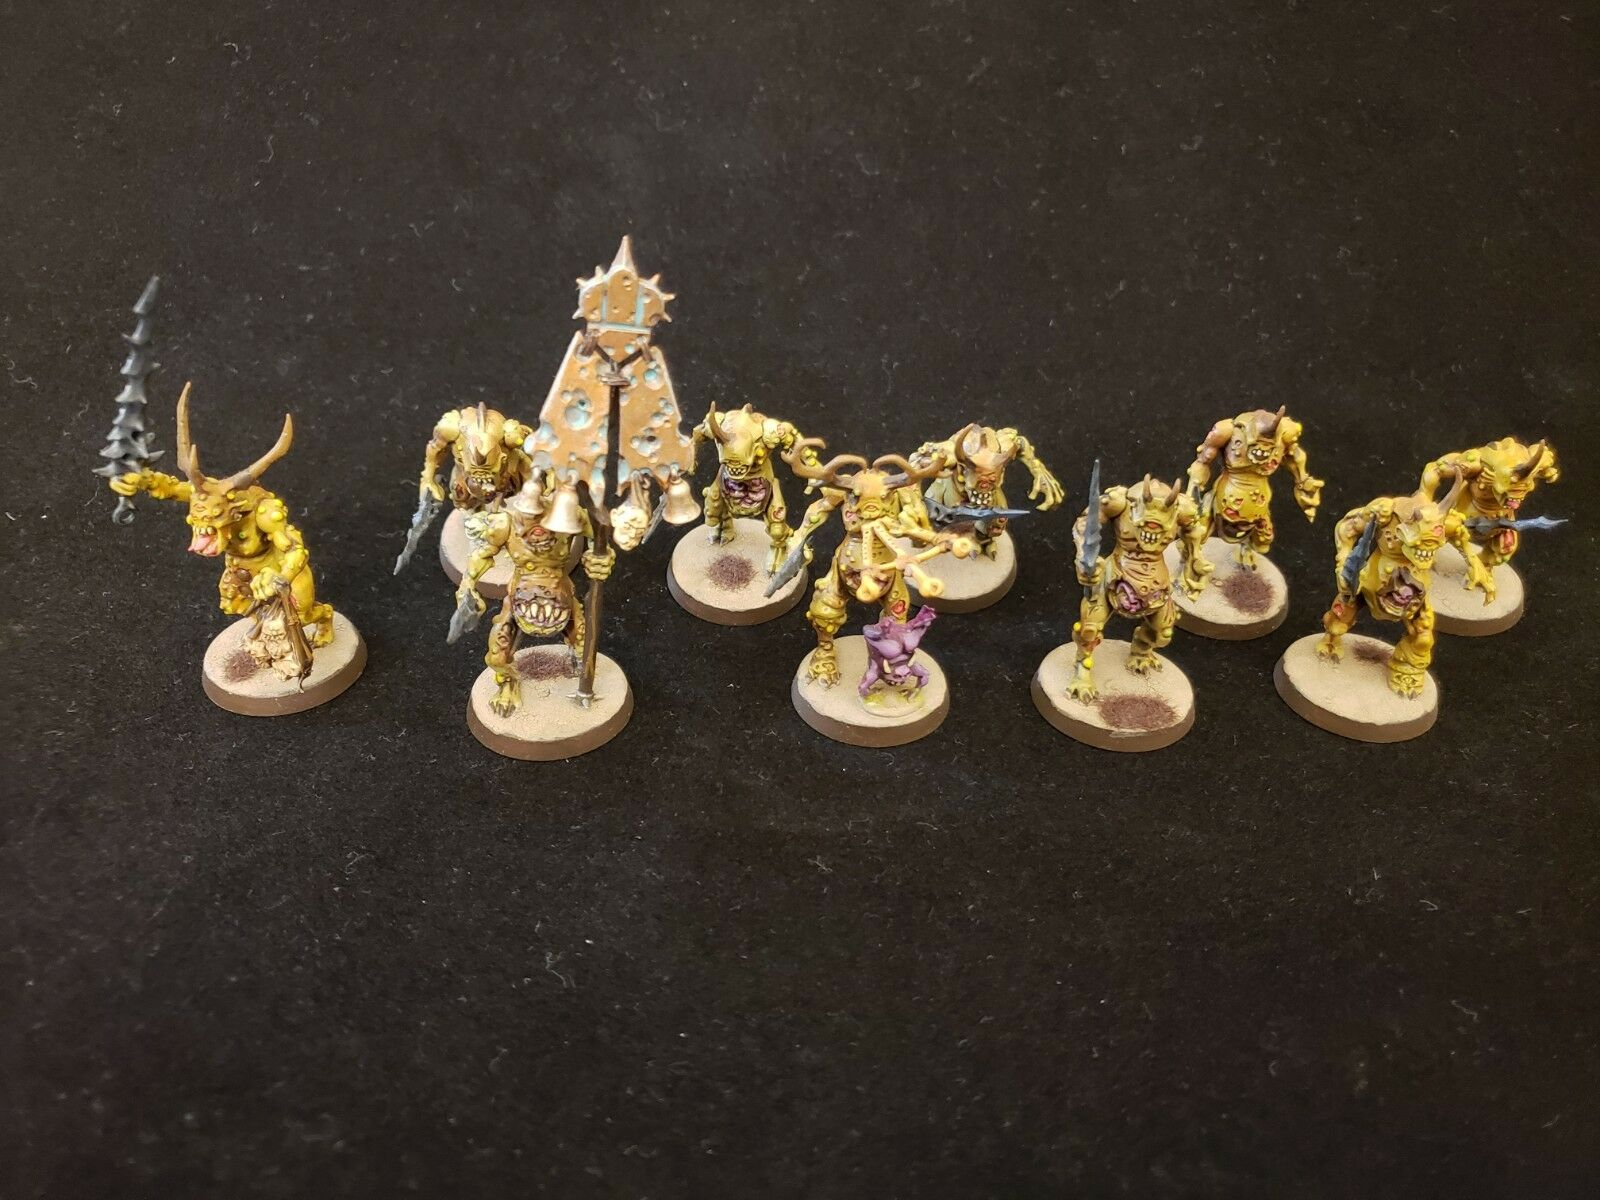 Warhammer 40k Age of Sigmar Chaos Daemons Plaguebearers of Nurgle painted